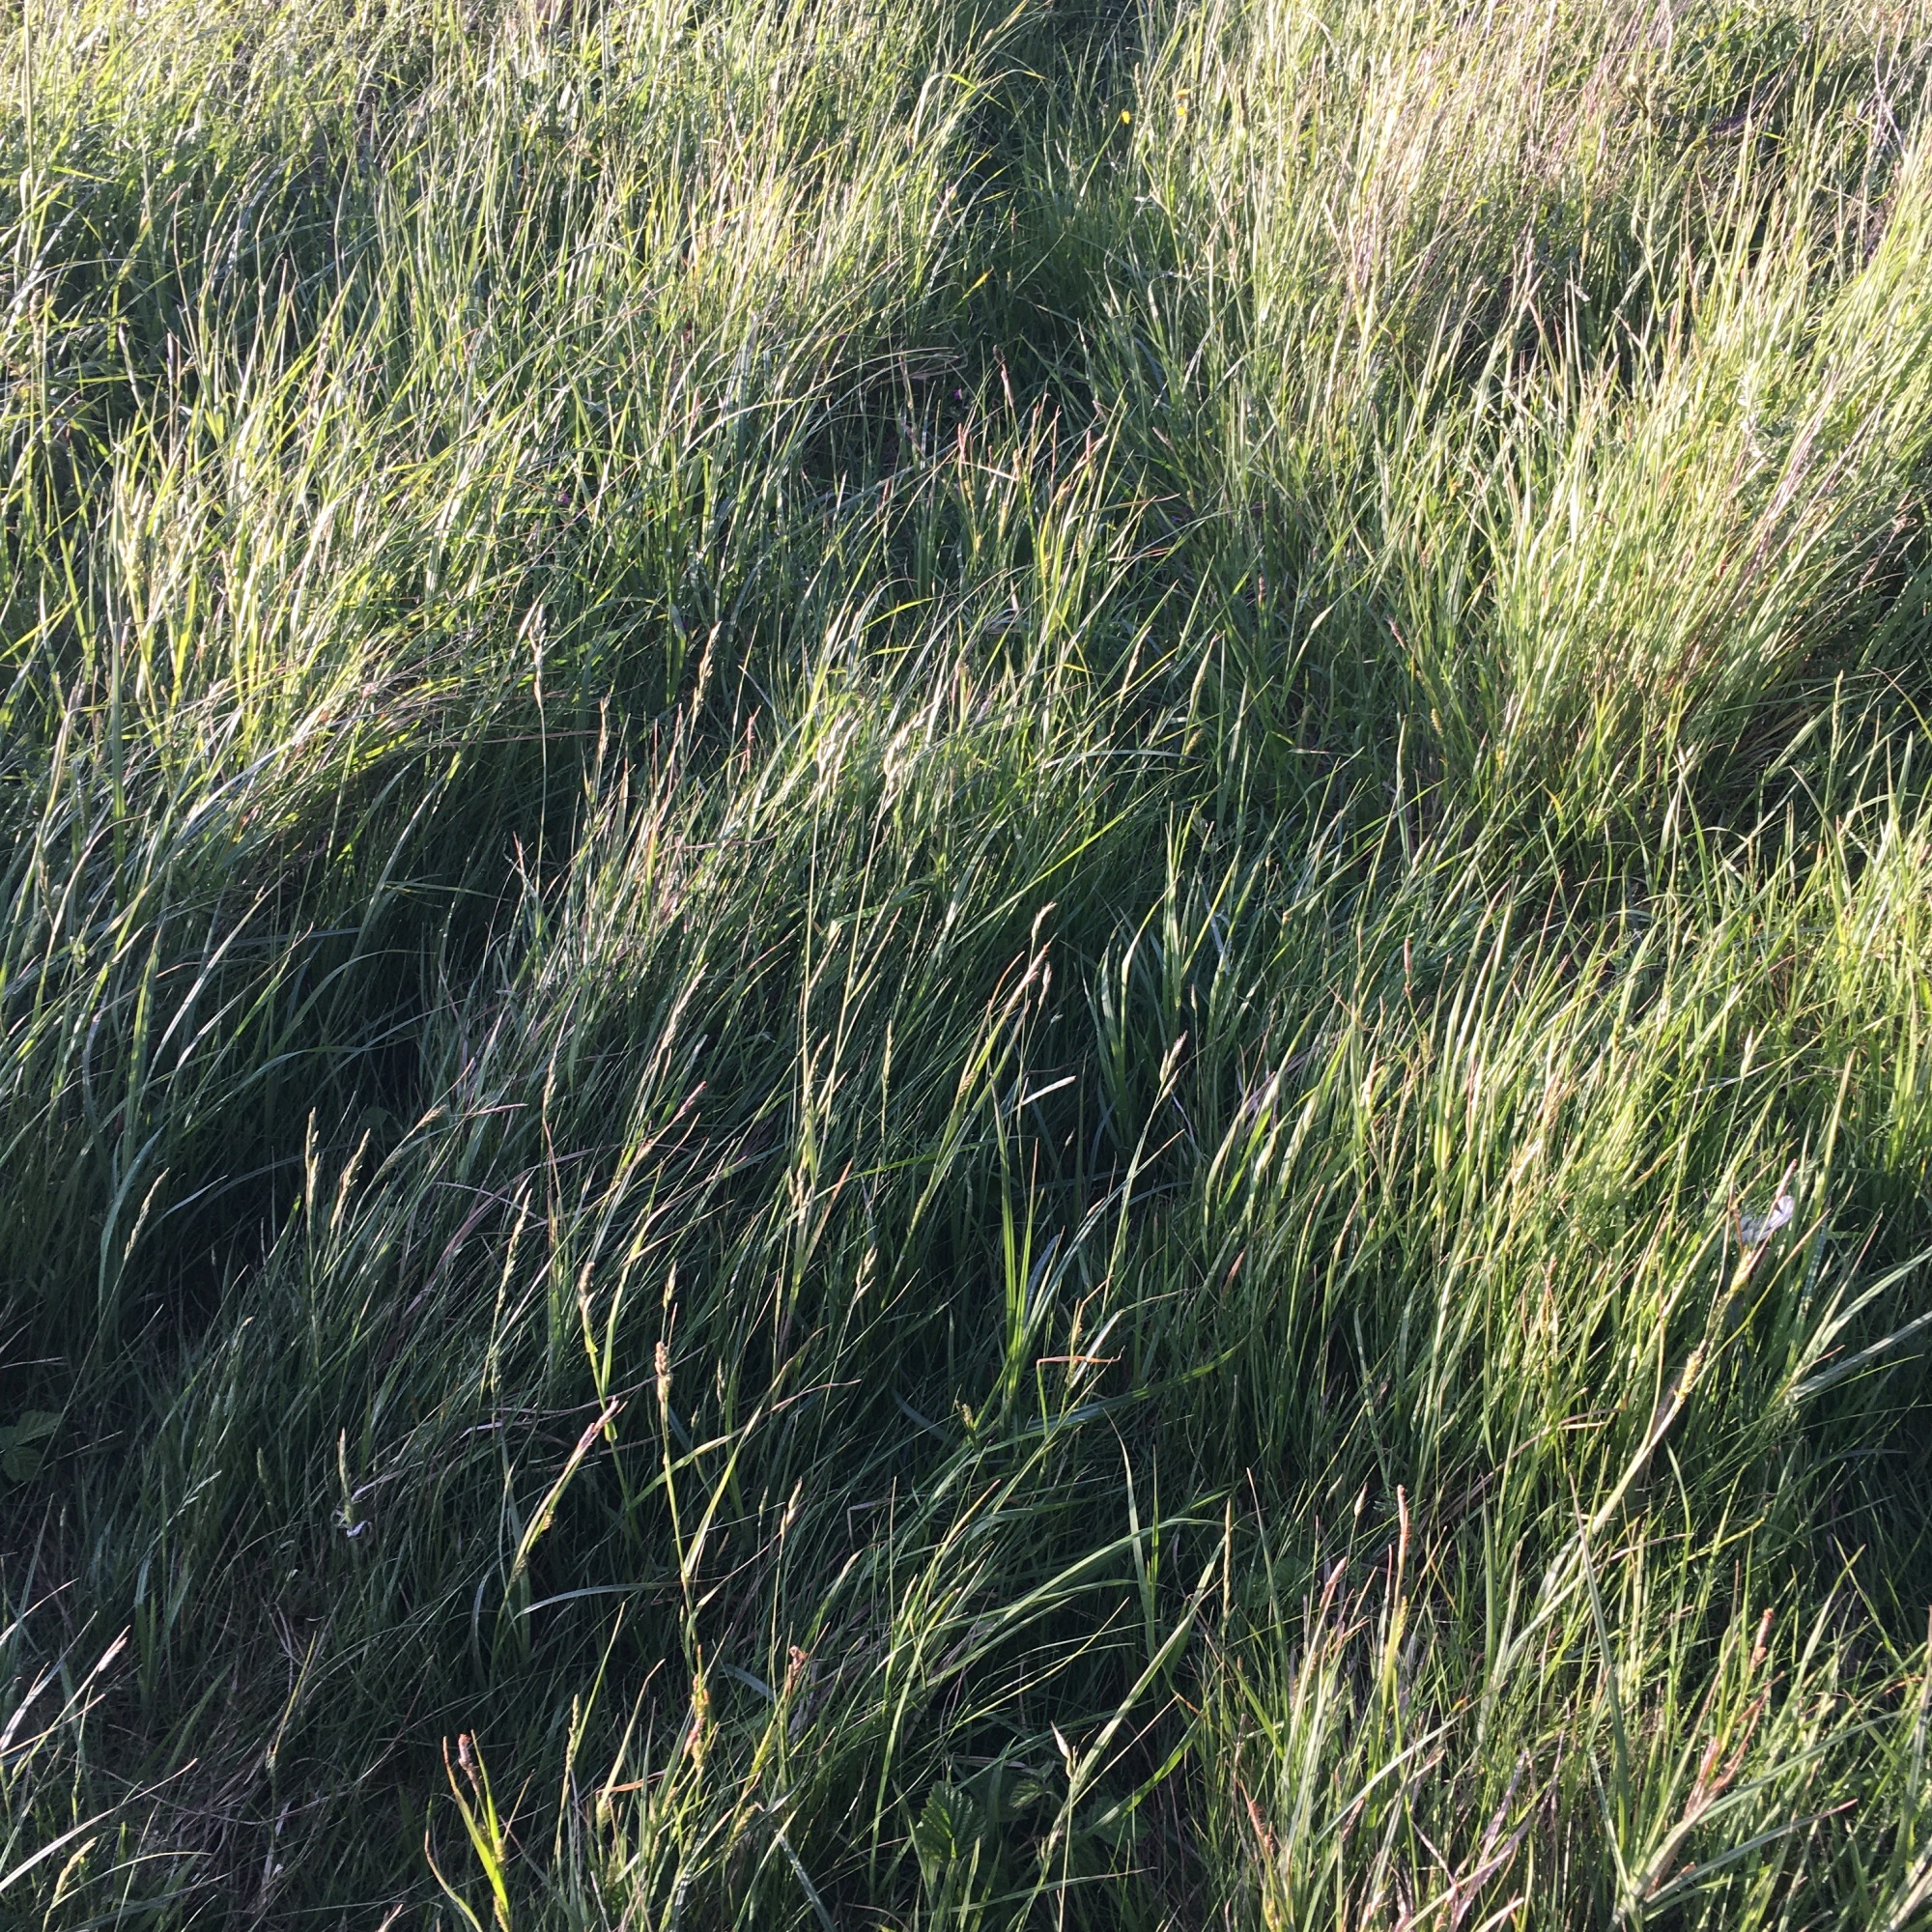 Grasses Project - Paths - animal track - Path No12 - Burry Port 2020